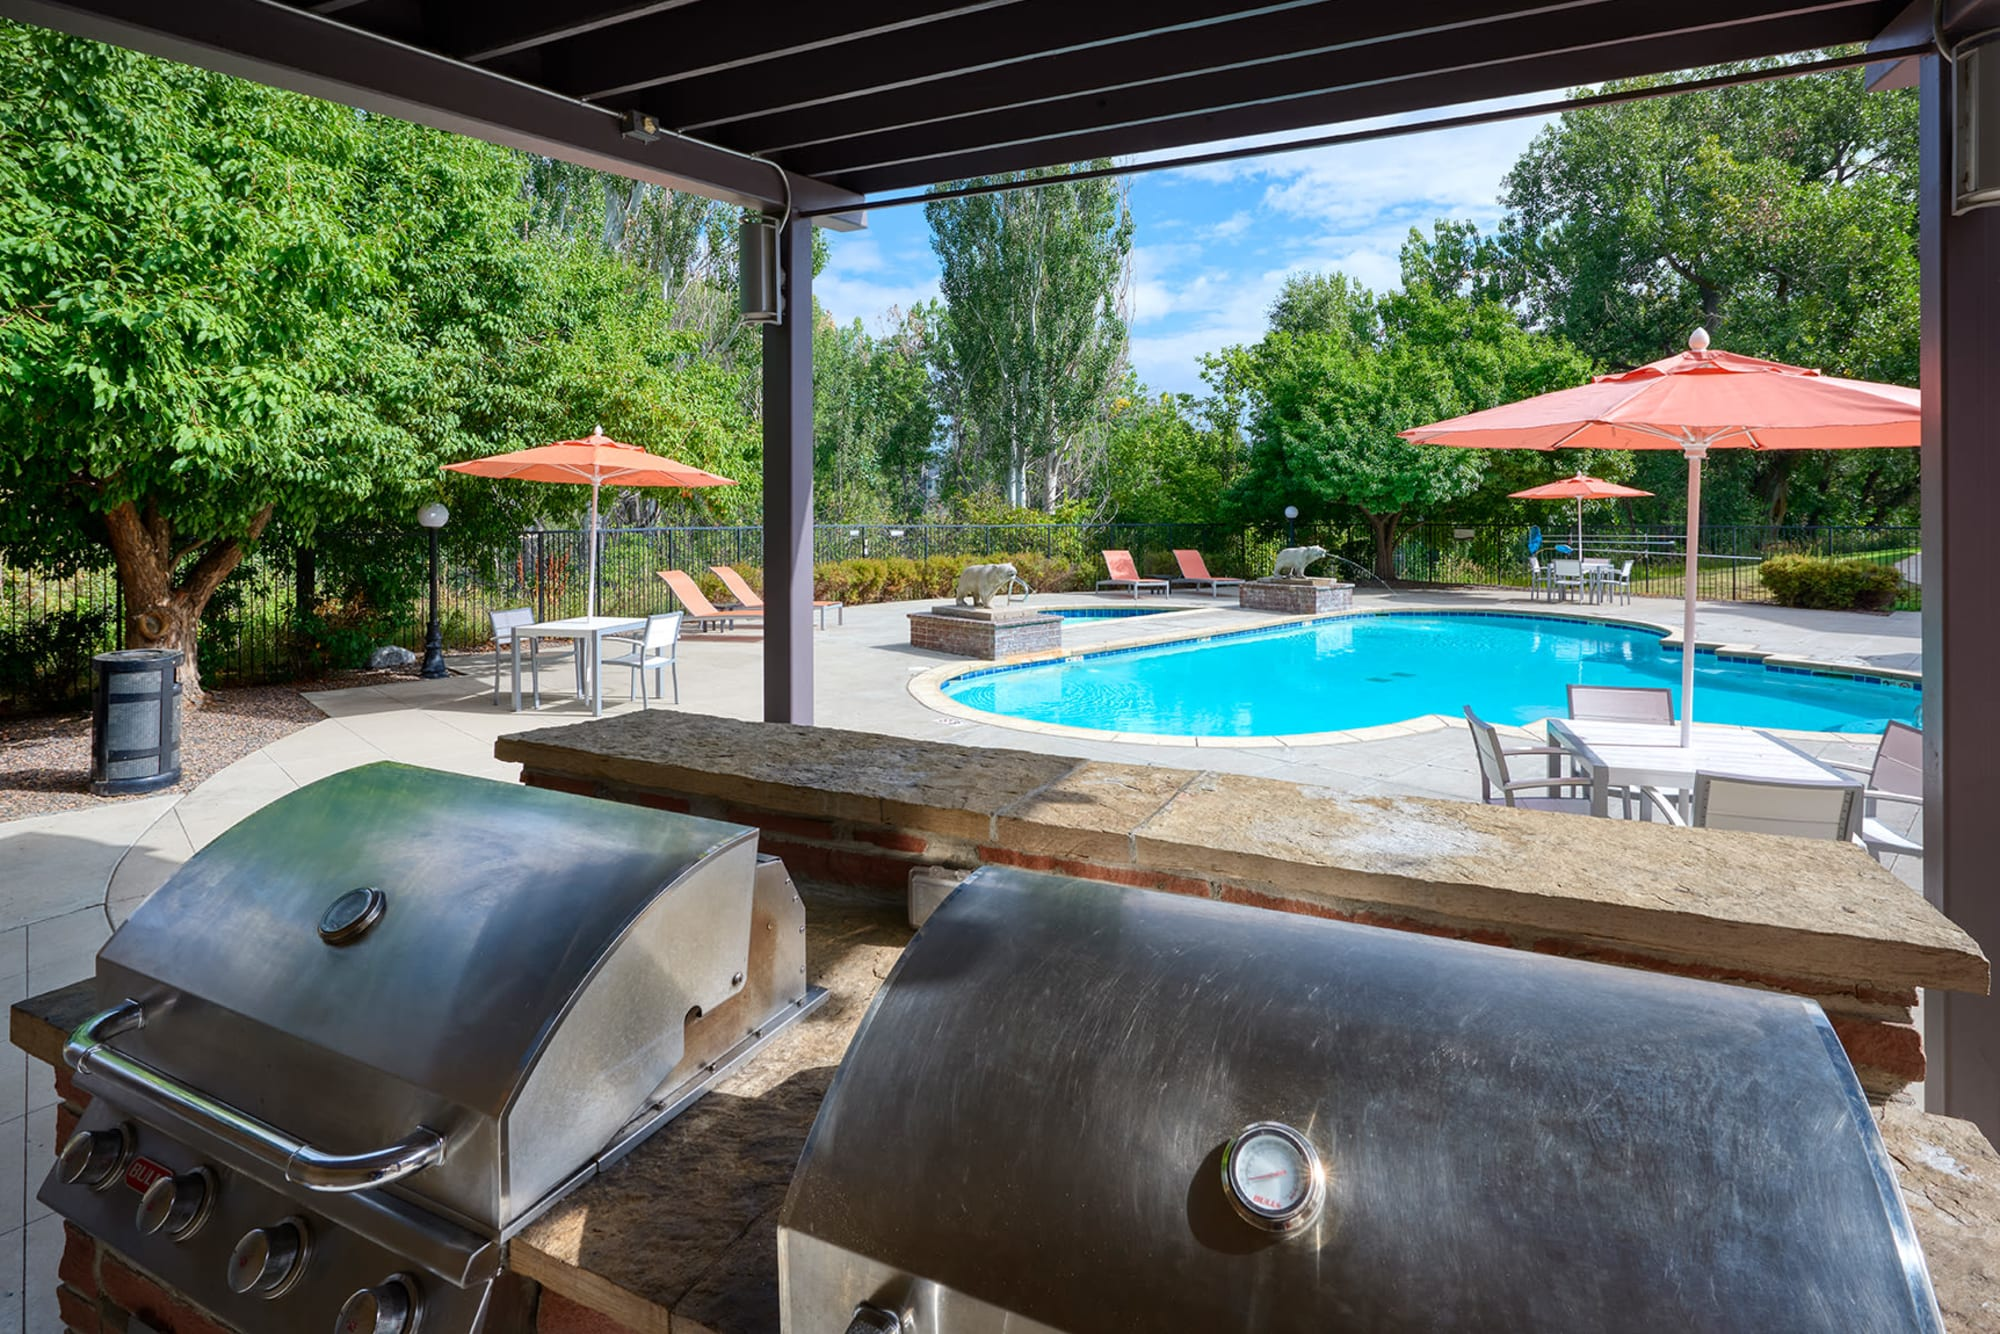 The poolside covered outdoor BBQs at The Crossings at Bear Creek Apartments in Lakewood, Colorado